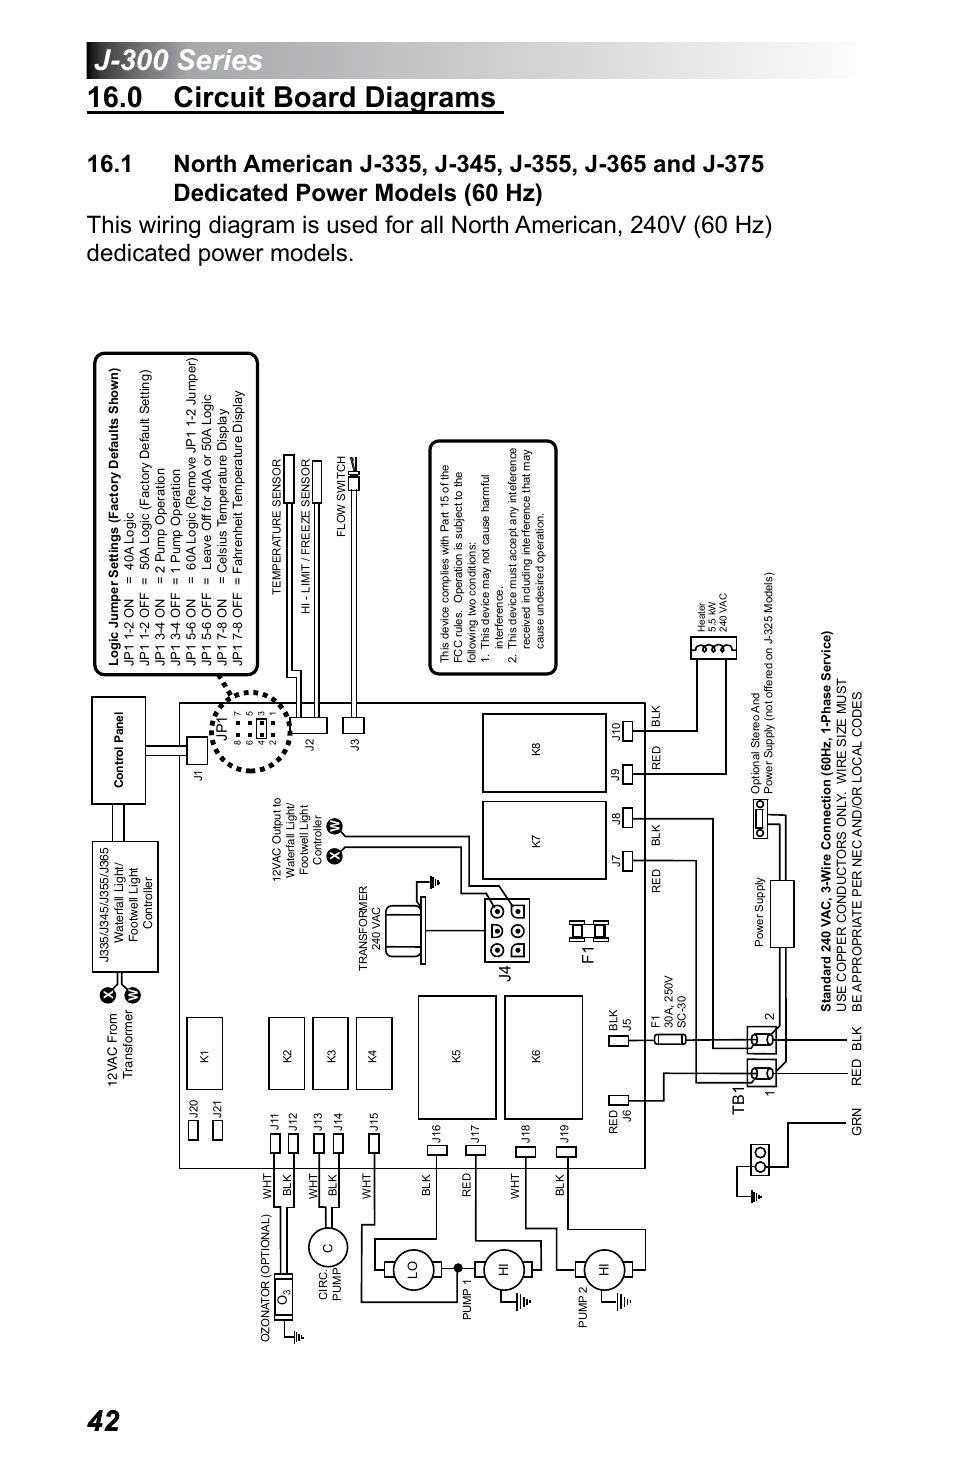 J 380 Circuit Board Wiring Diagram Diagrams Balboa 0 Dedicated Power Models 60 Hz